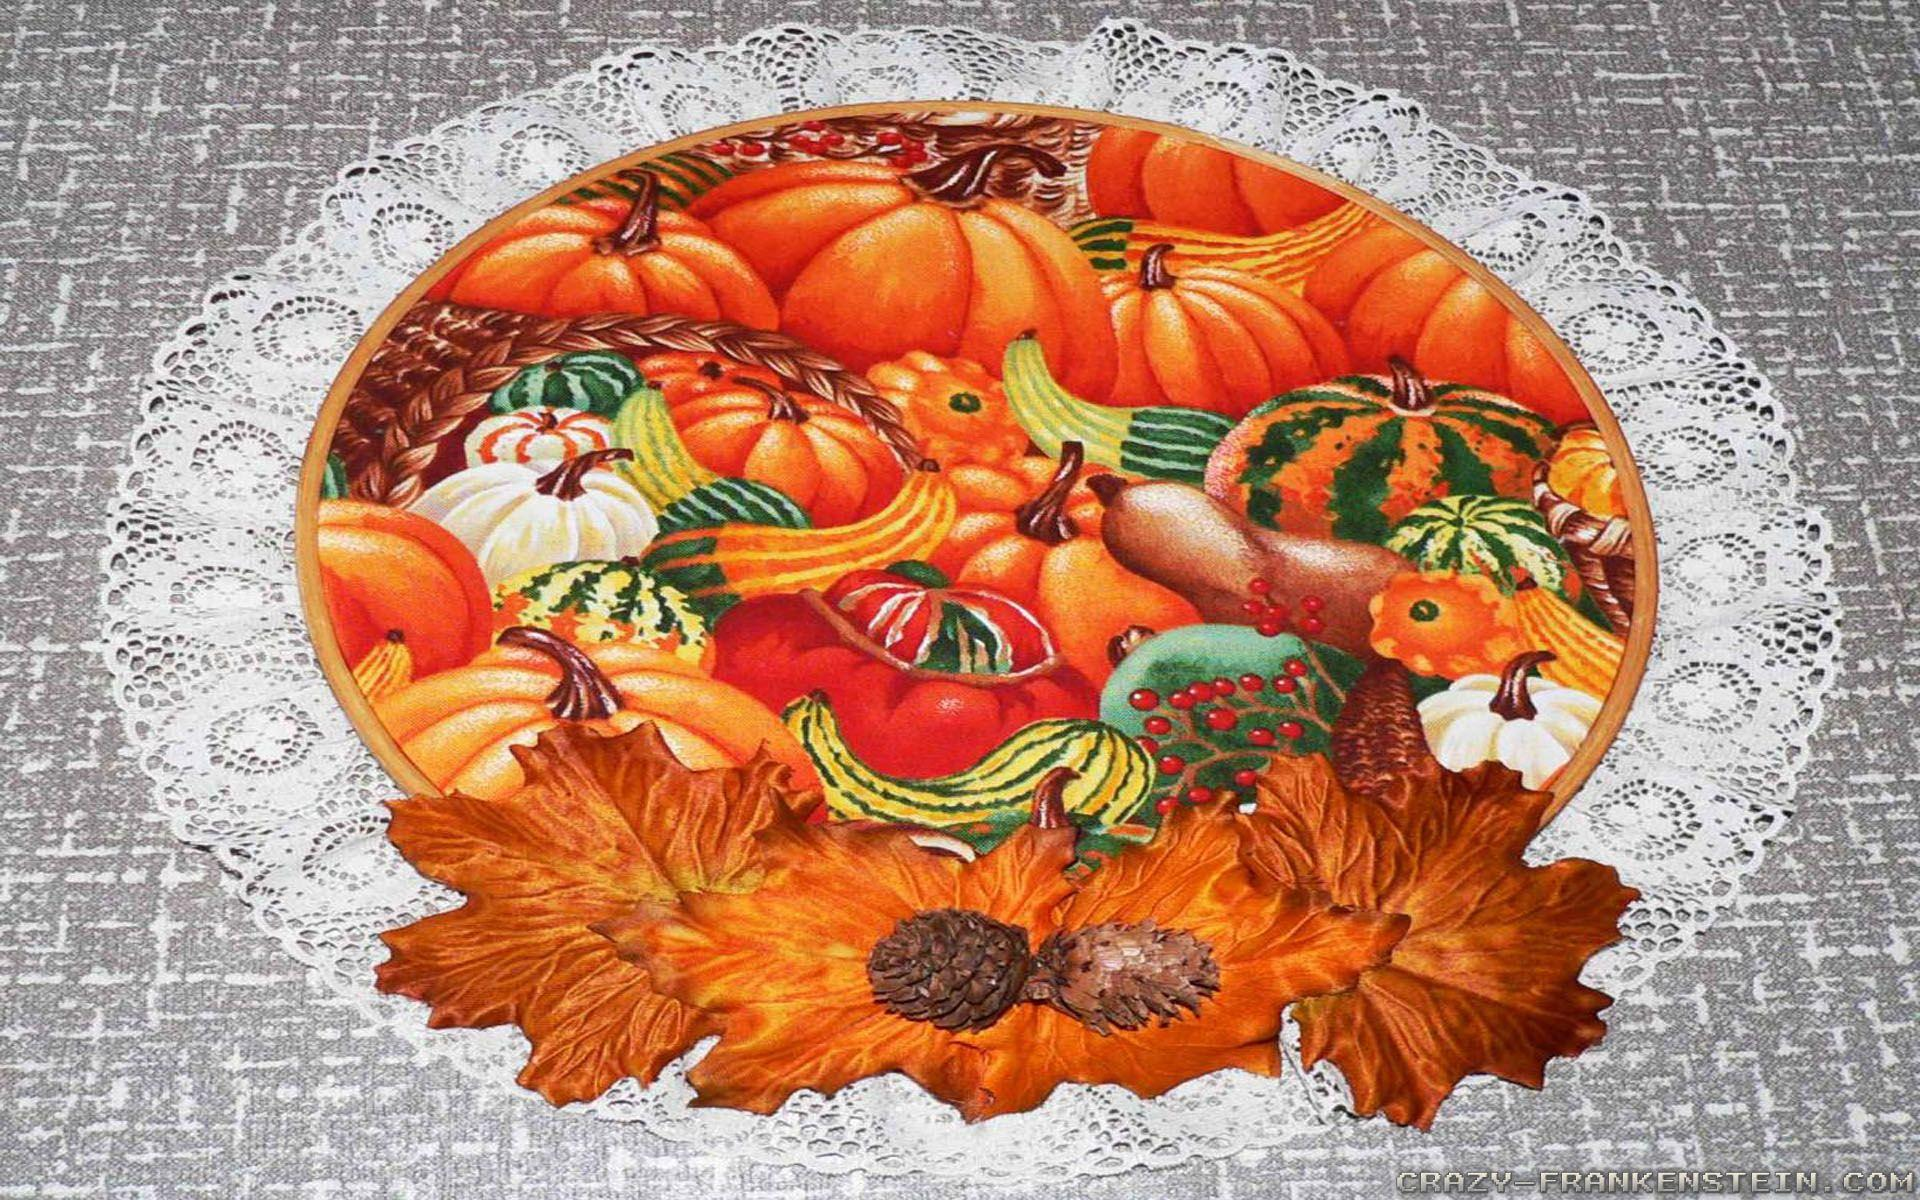 Thanksgiving Day Decorations wallpapers - Crazy Frankenstein